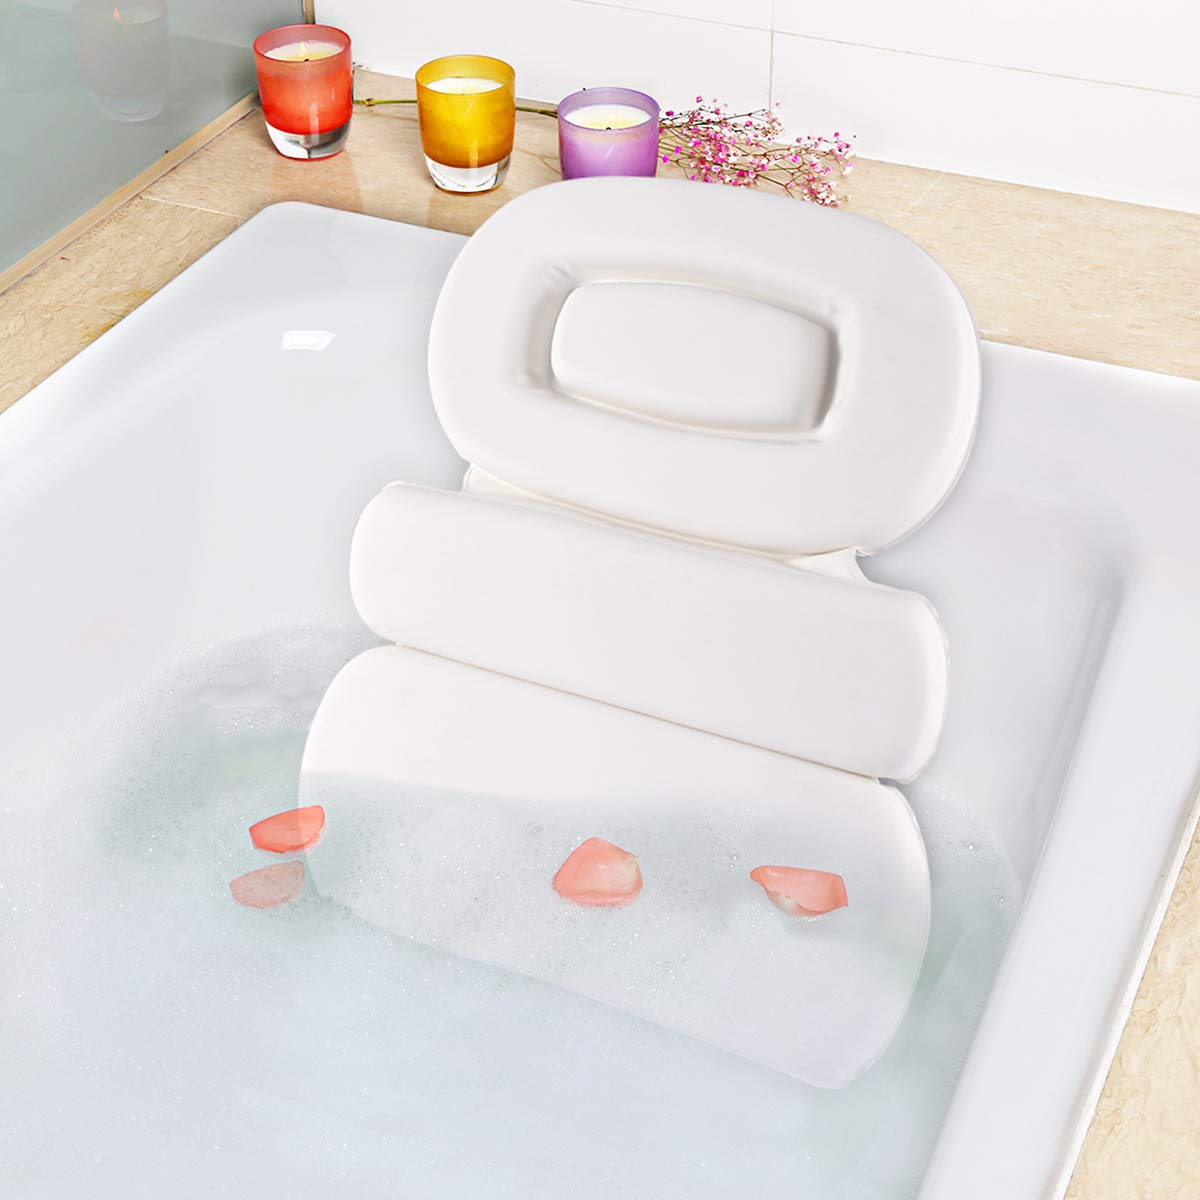 Wodesid Bathtub Pillow Luxury 3 T Panel Bath for OFFicial store Non-slip Today's only